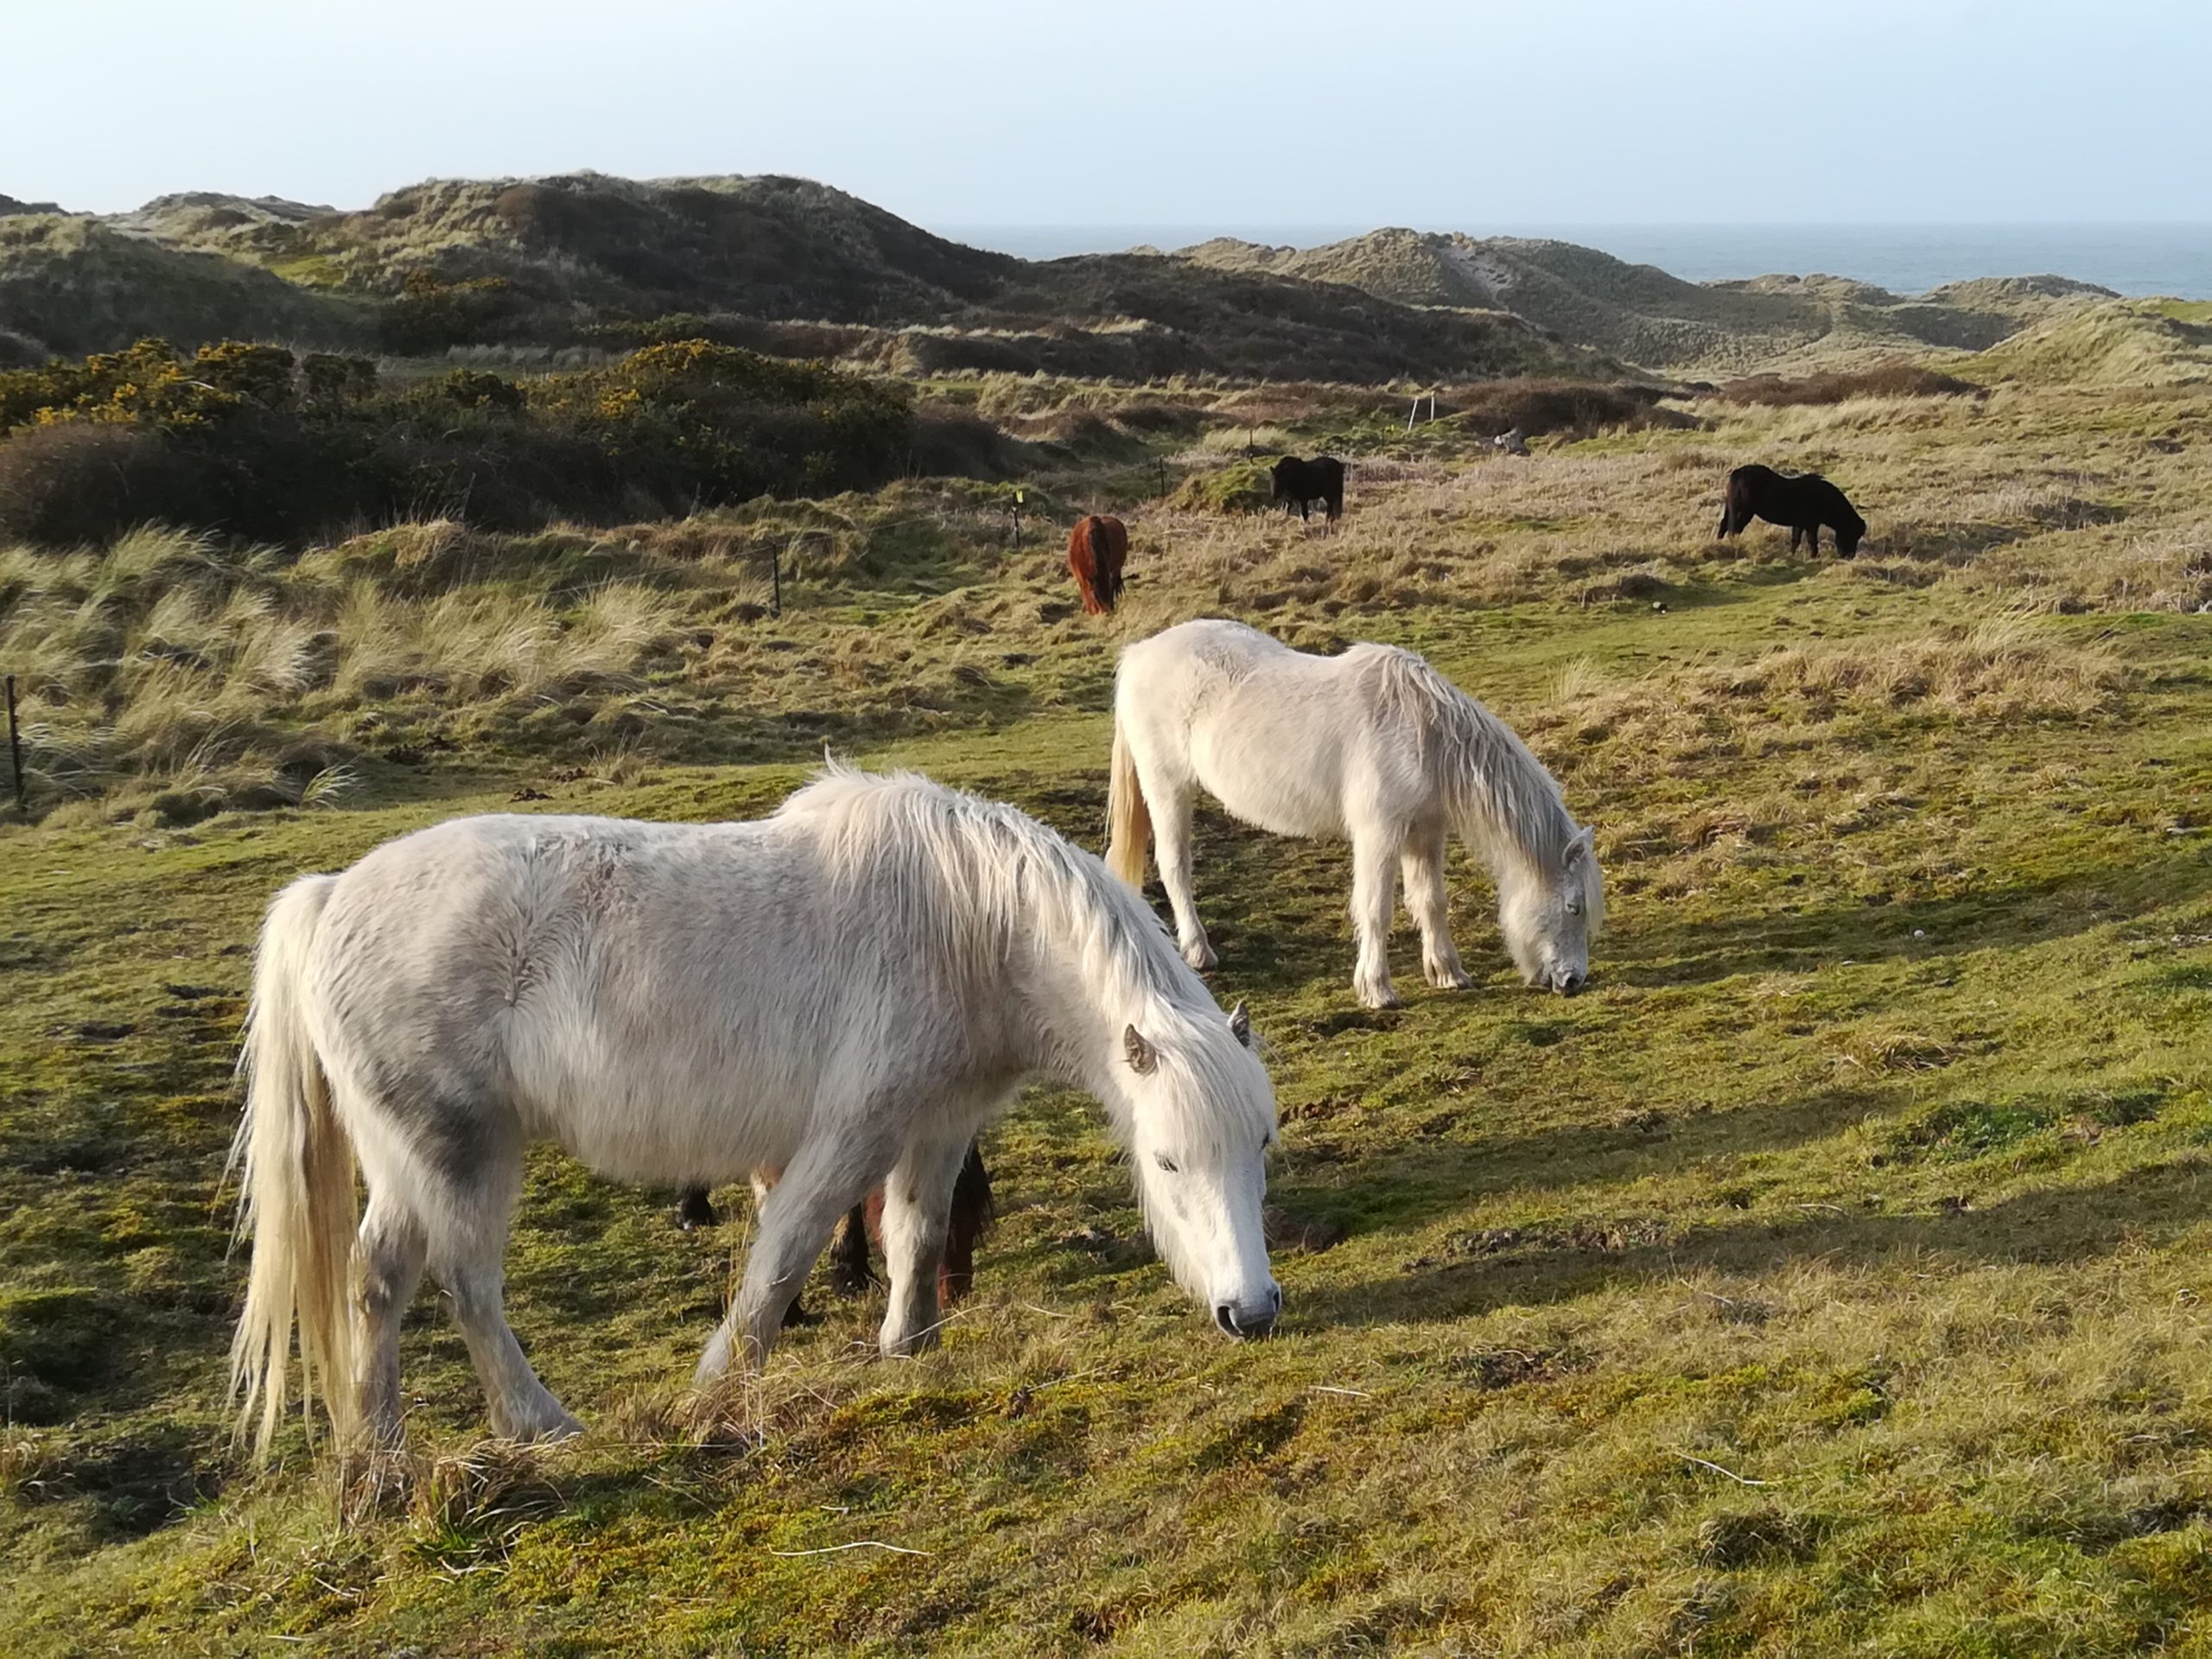 Horses at Upton Towans